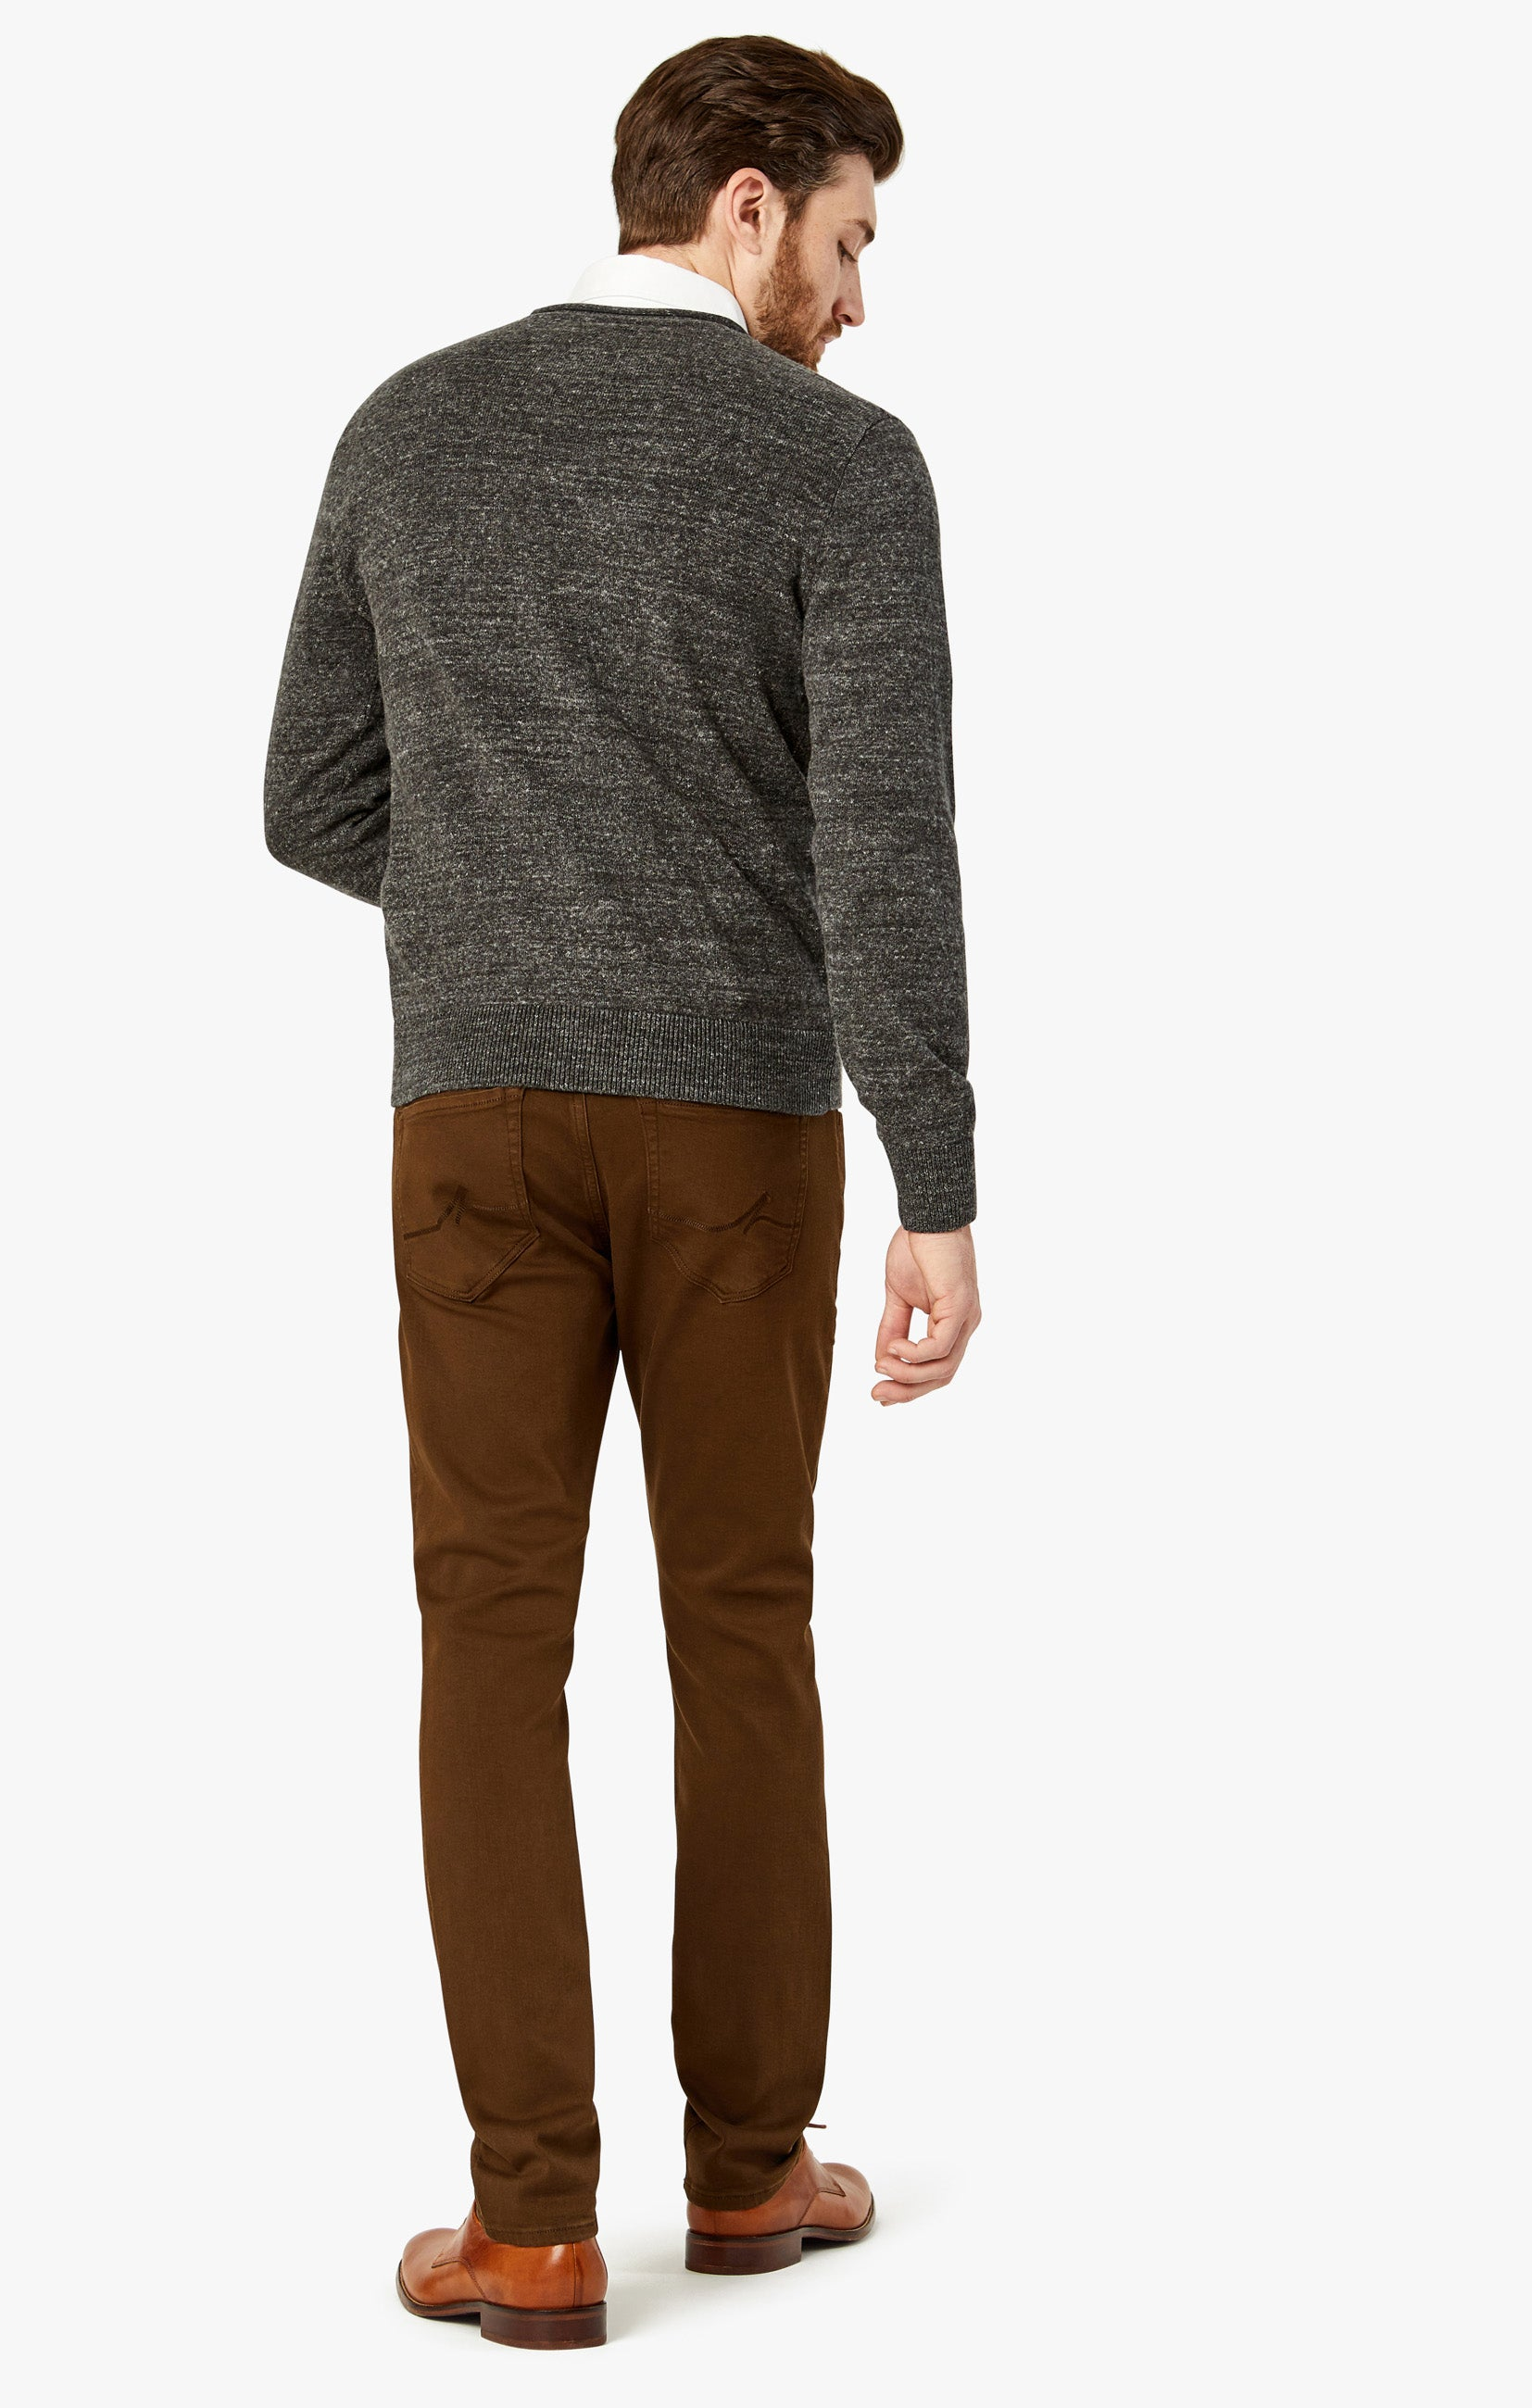 Charisma Relaxed Straight Pants in Brown Comfort Image 1